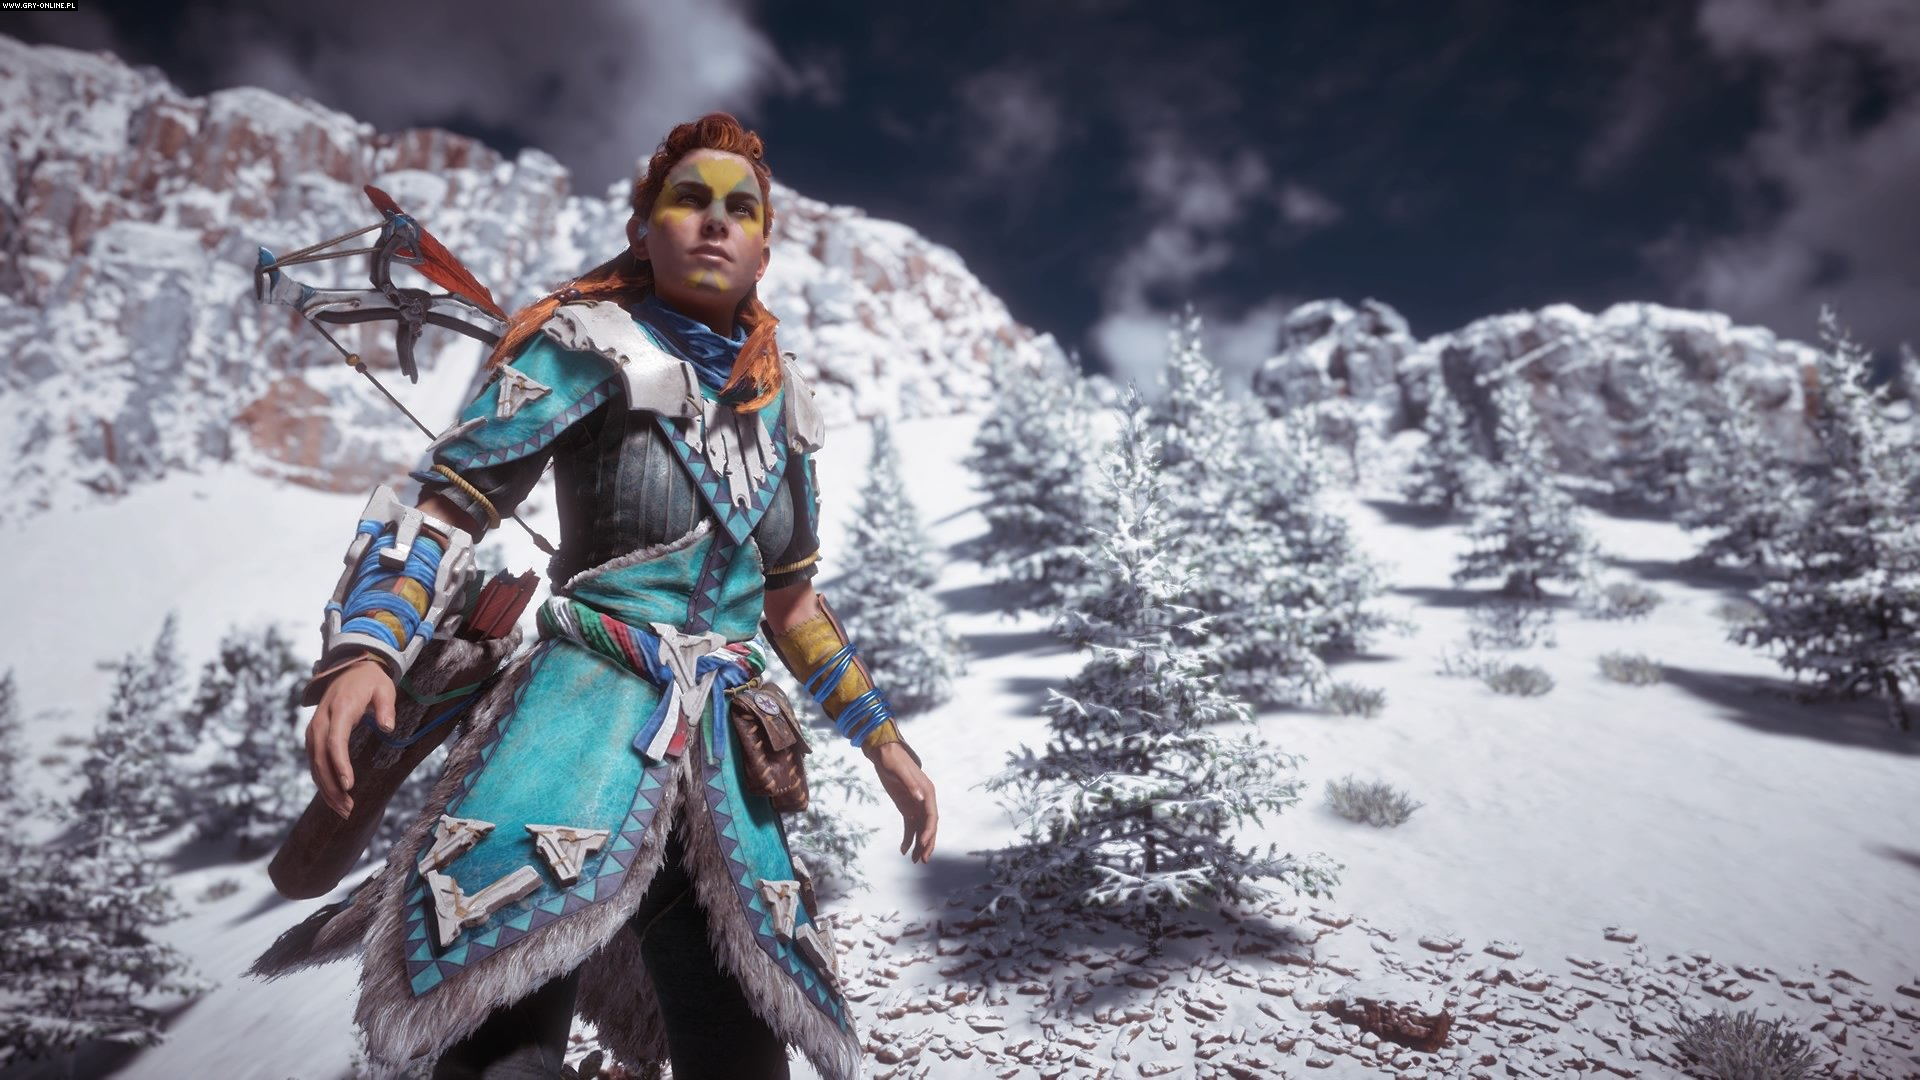 Horizon: Zero Dawn PS4 Games Image 3/131, Guerrilla Games, Sony Interactive Entertainment